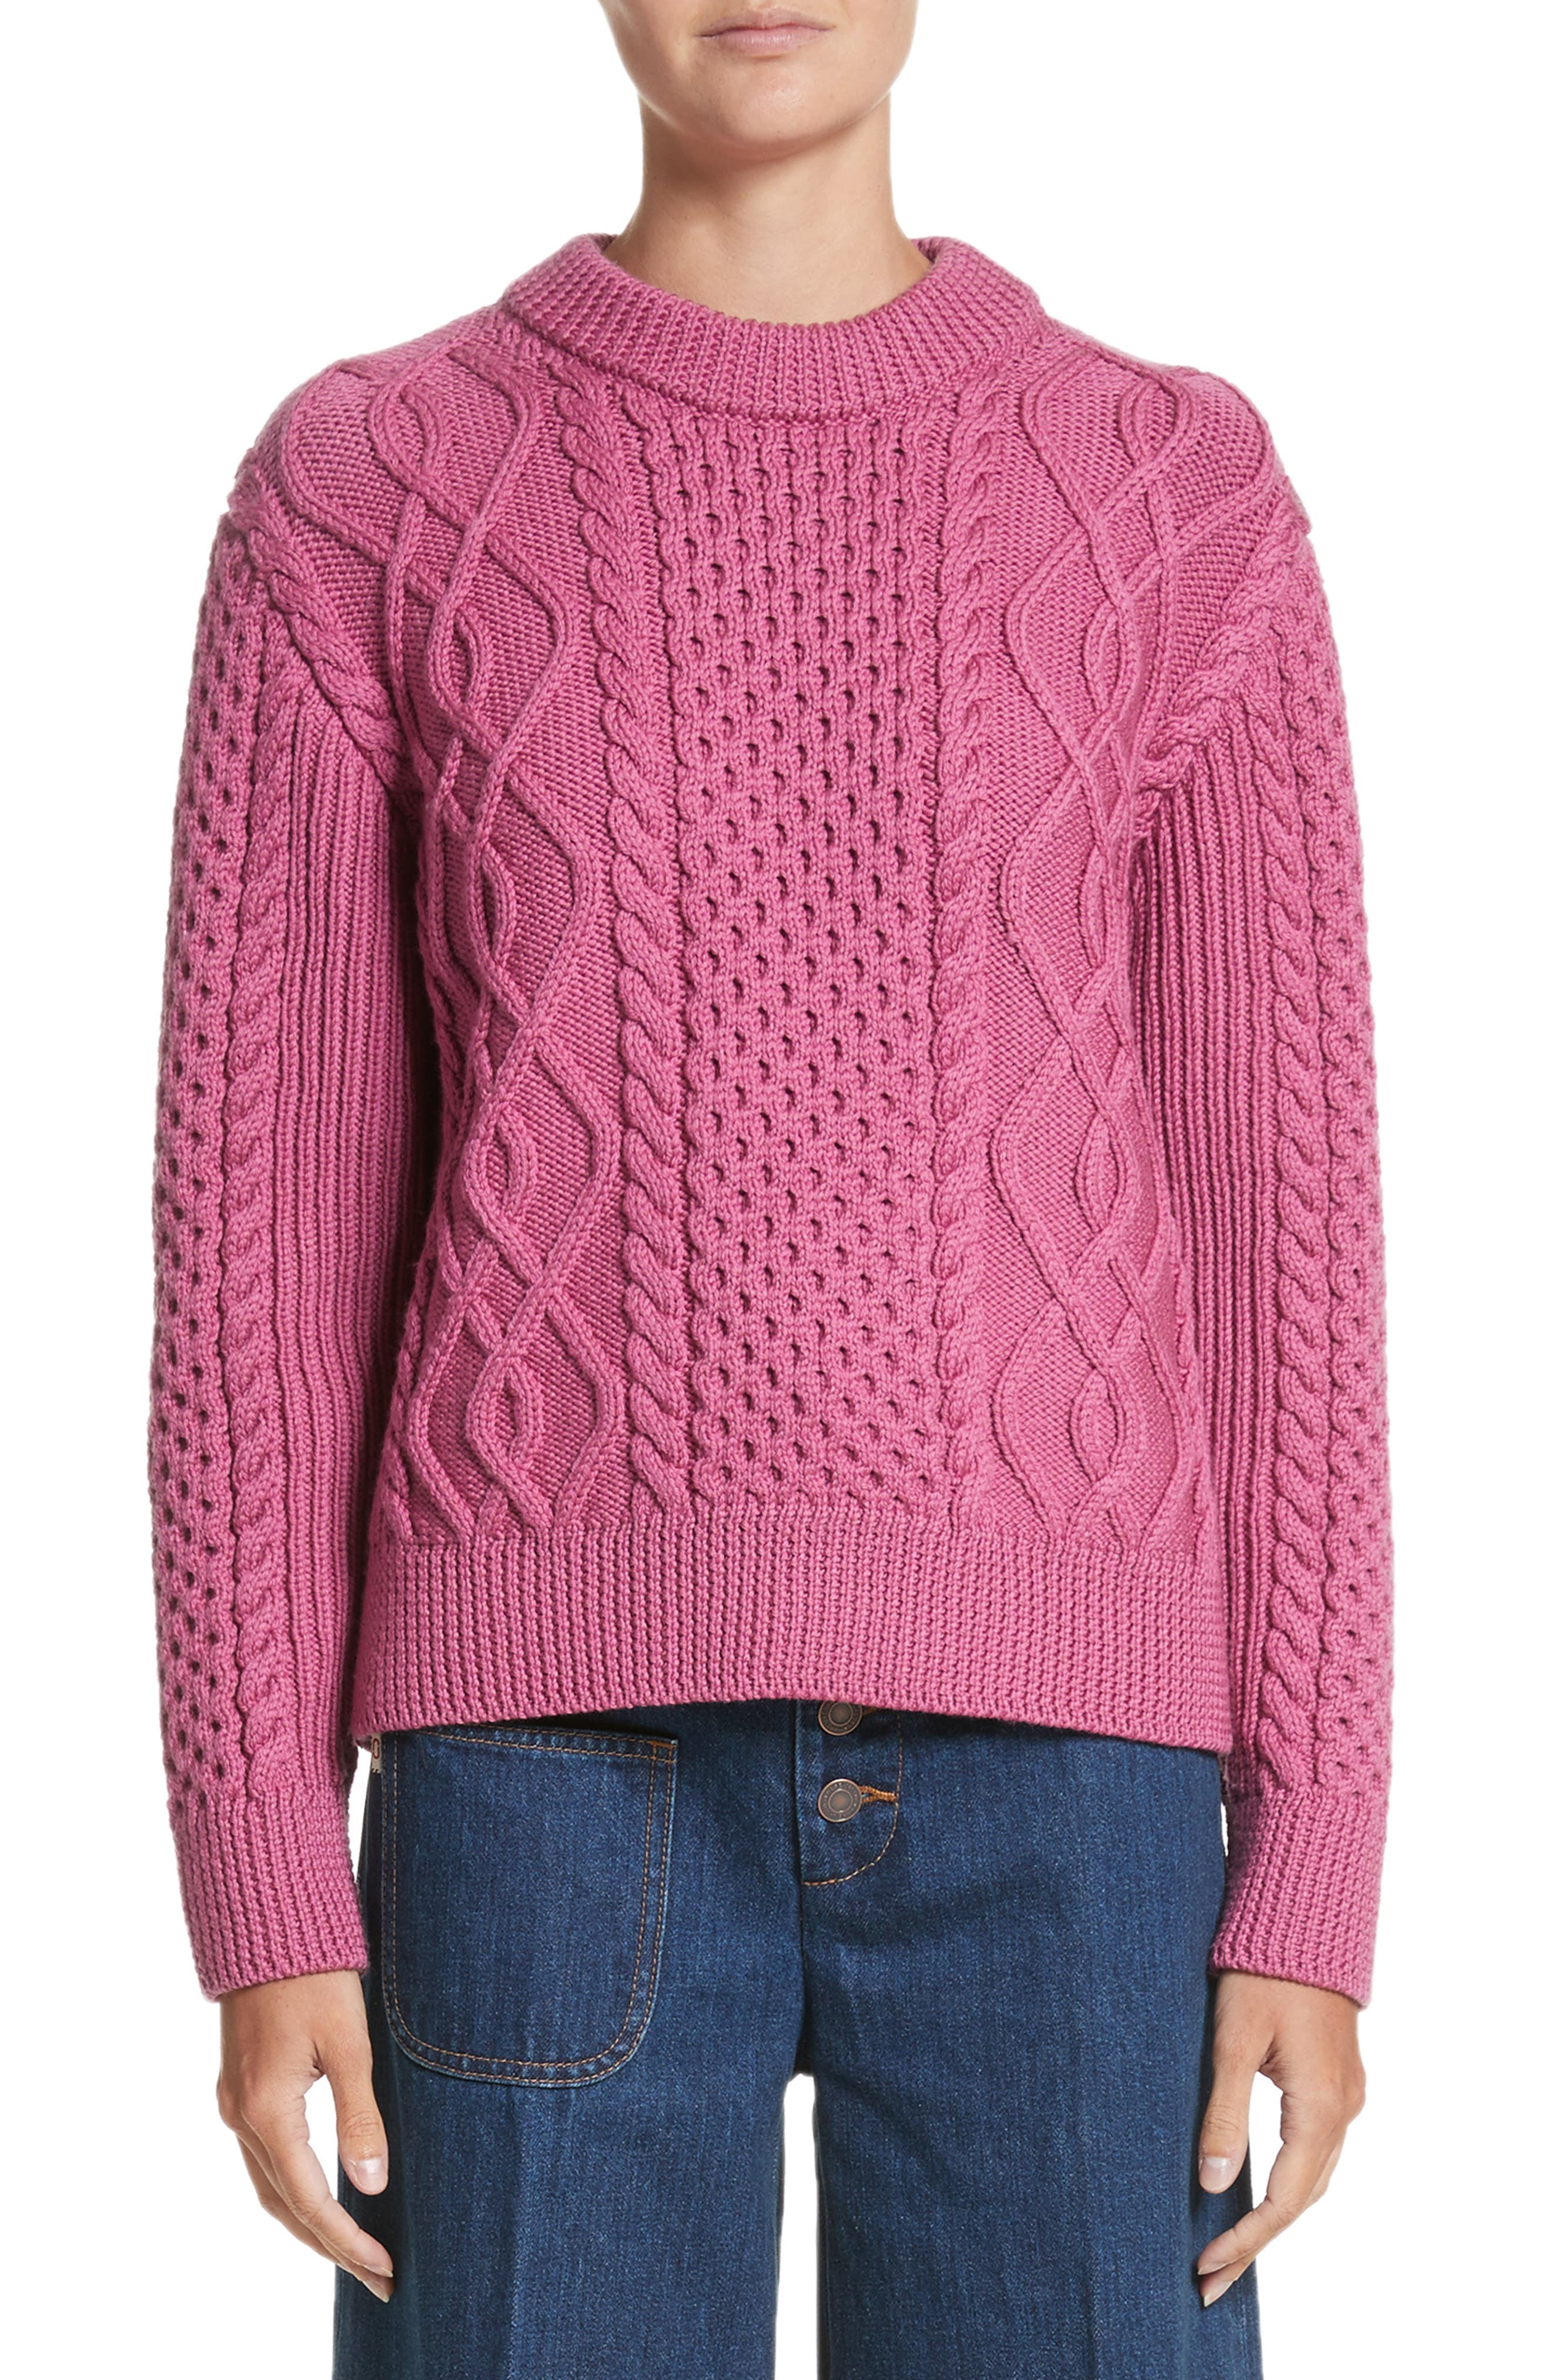 Merino Wool Cable Knit Sweater,                         Main,                         color,